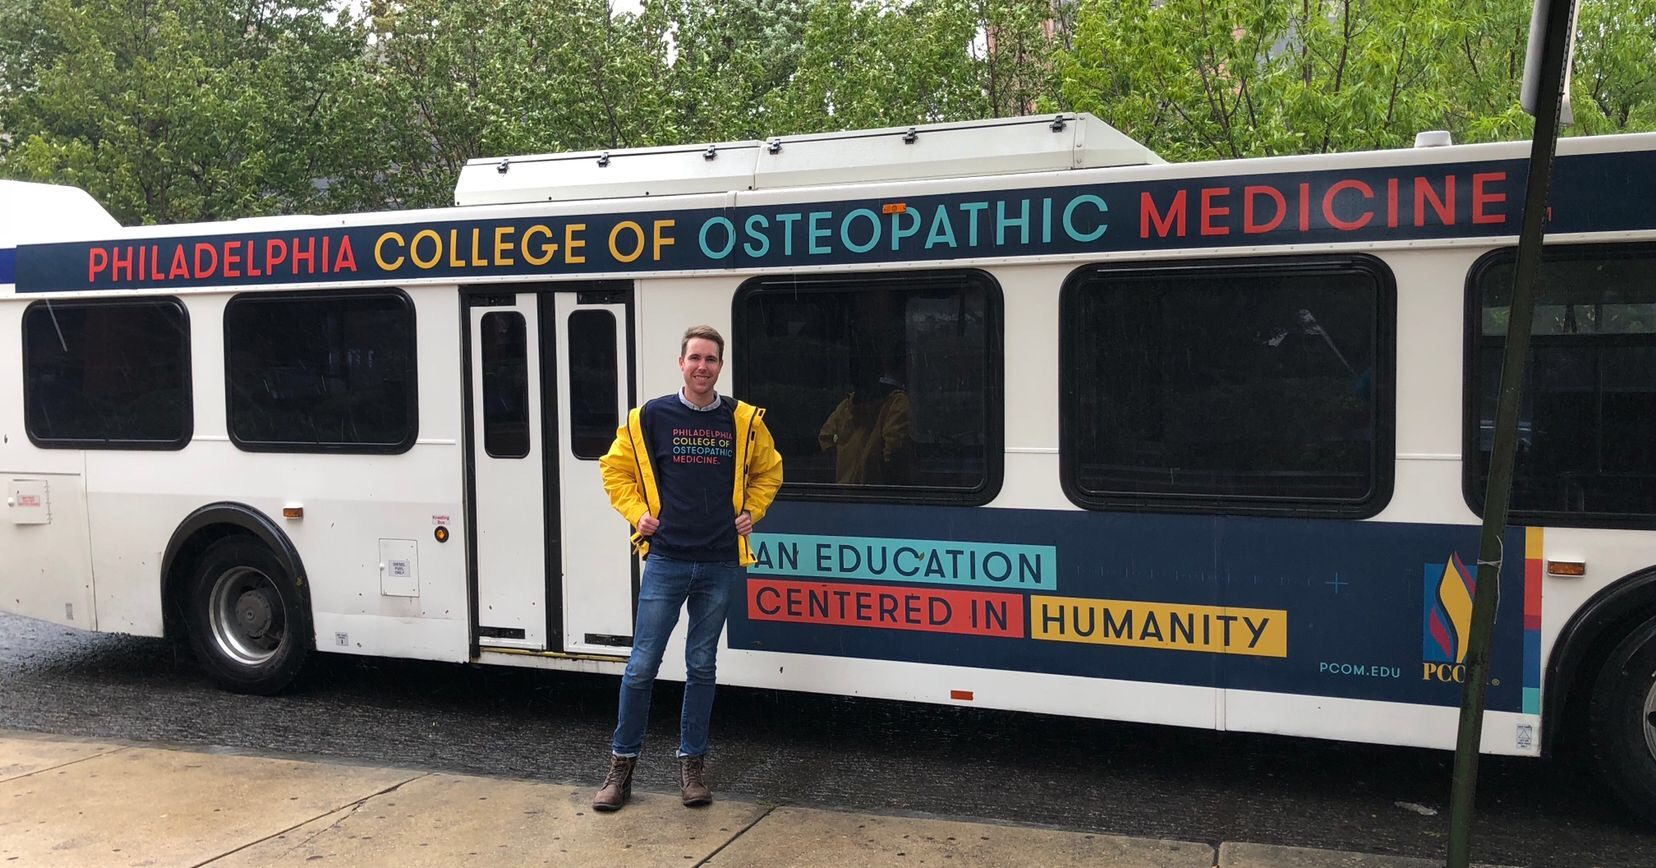 Student wearing PCOM swag posing in front of SEPTA bus with PCOM ad.